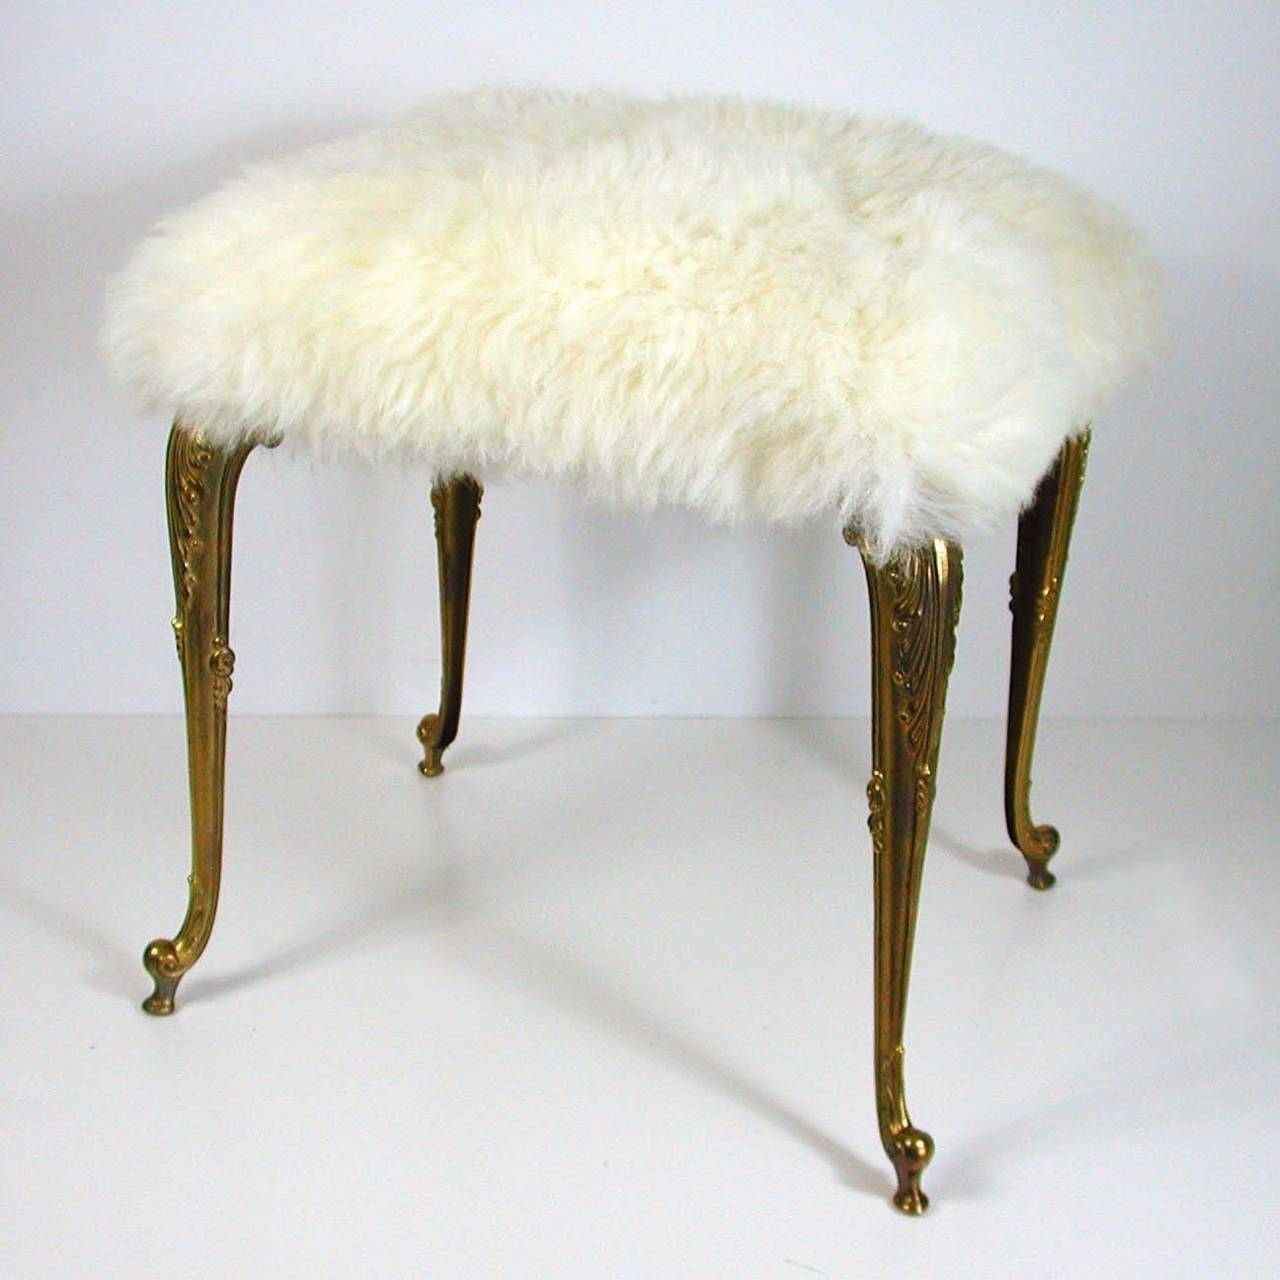 vanity chair white fur modified stand test hollywood regency upholstered sheep bronze